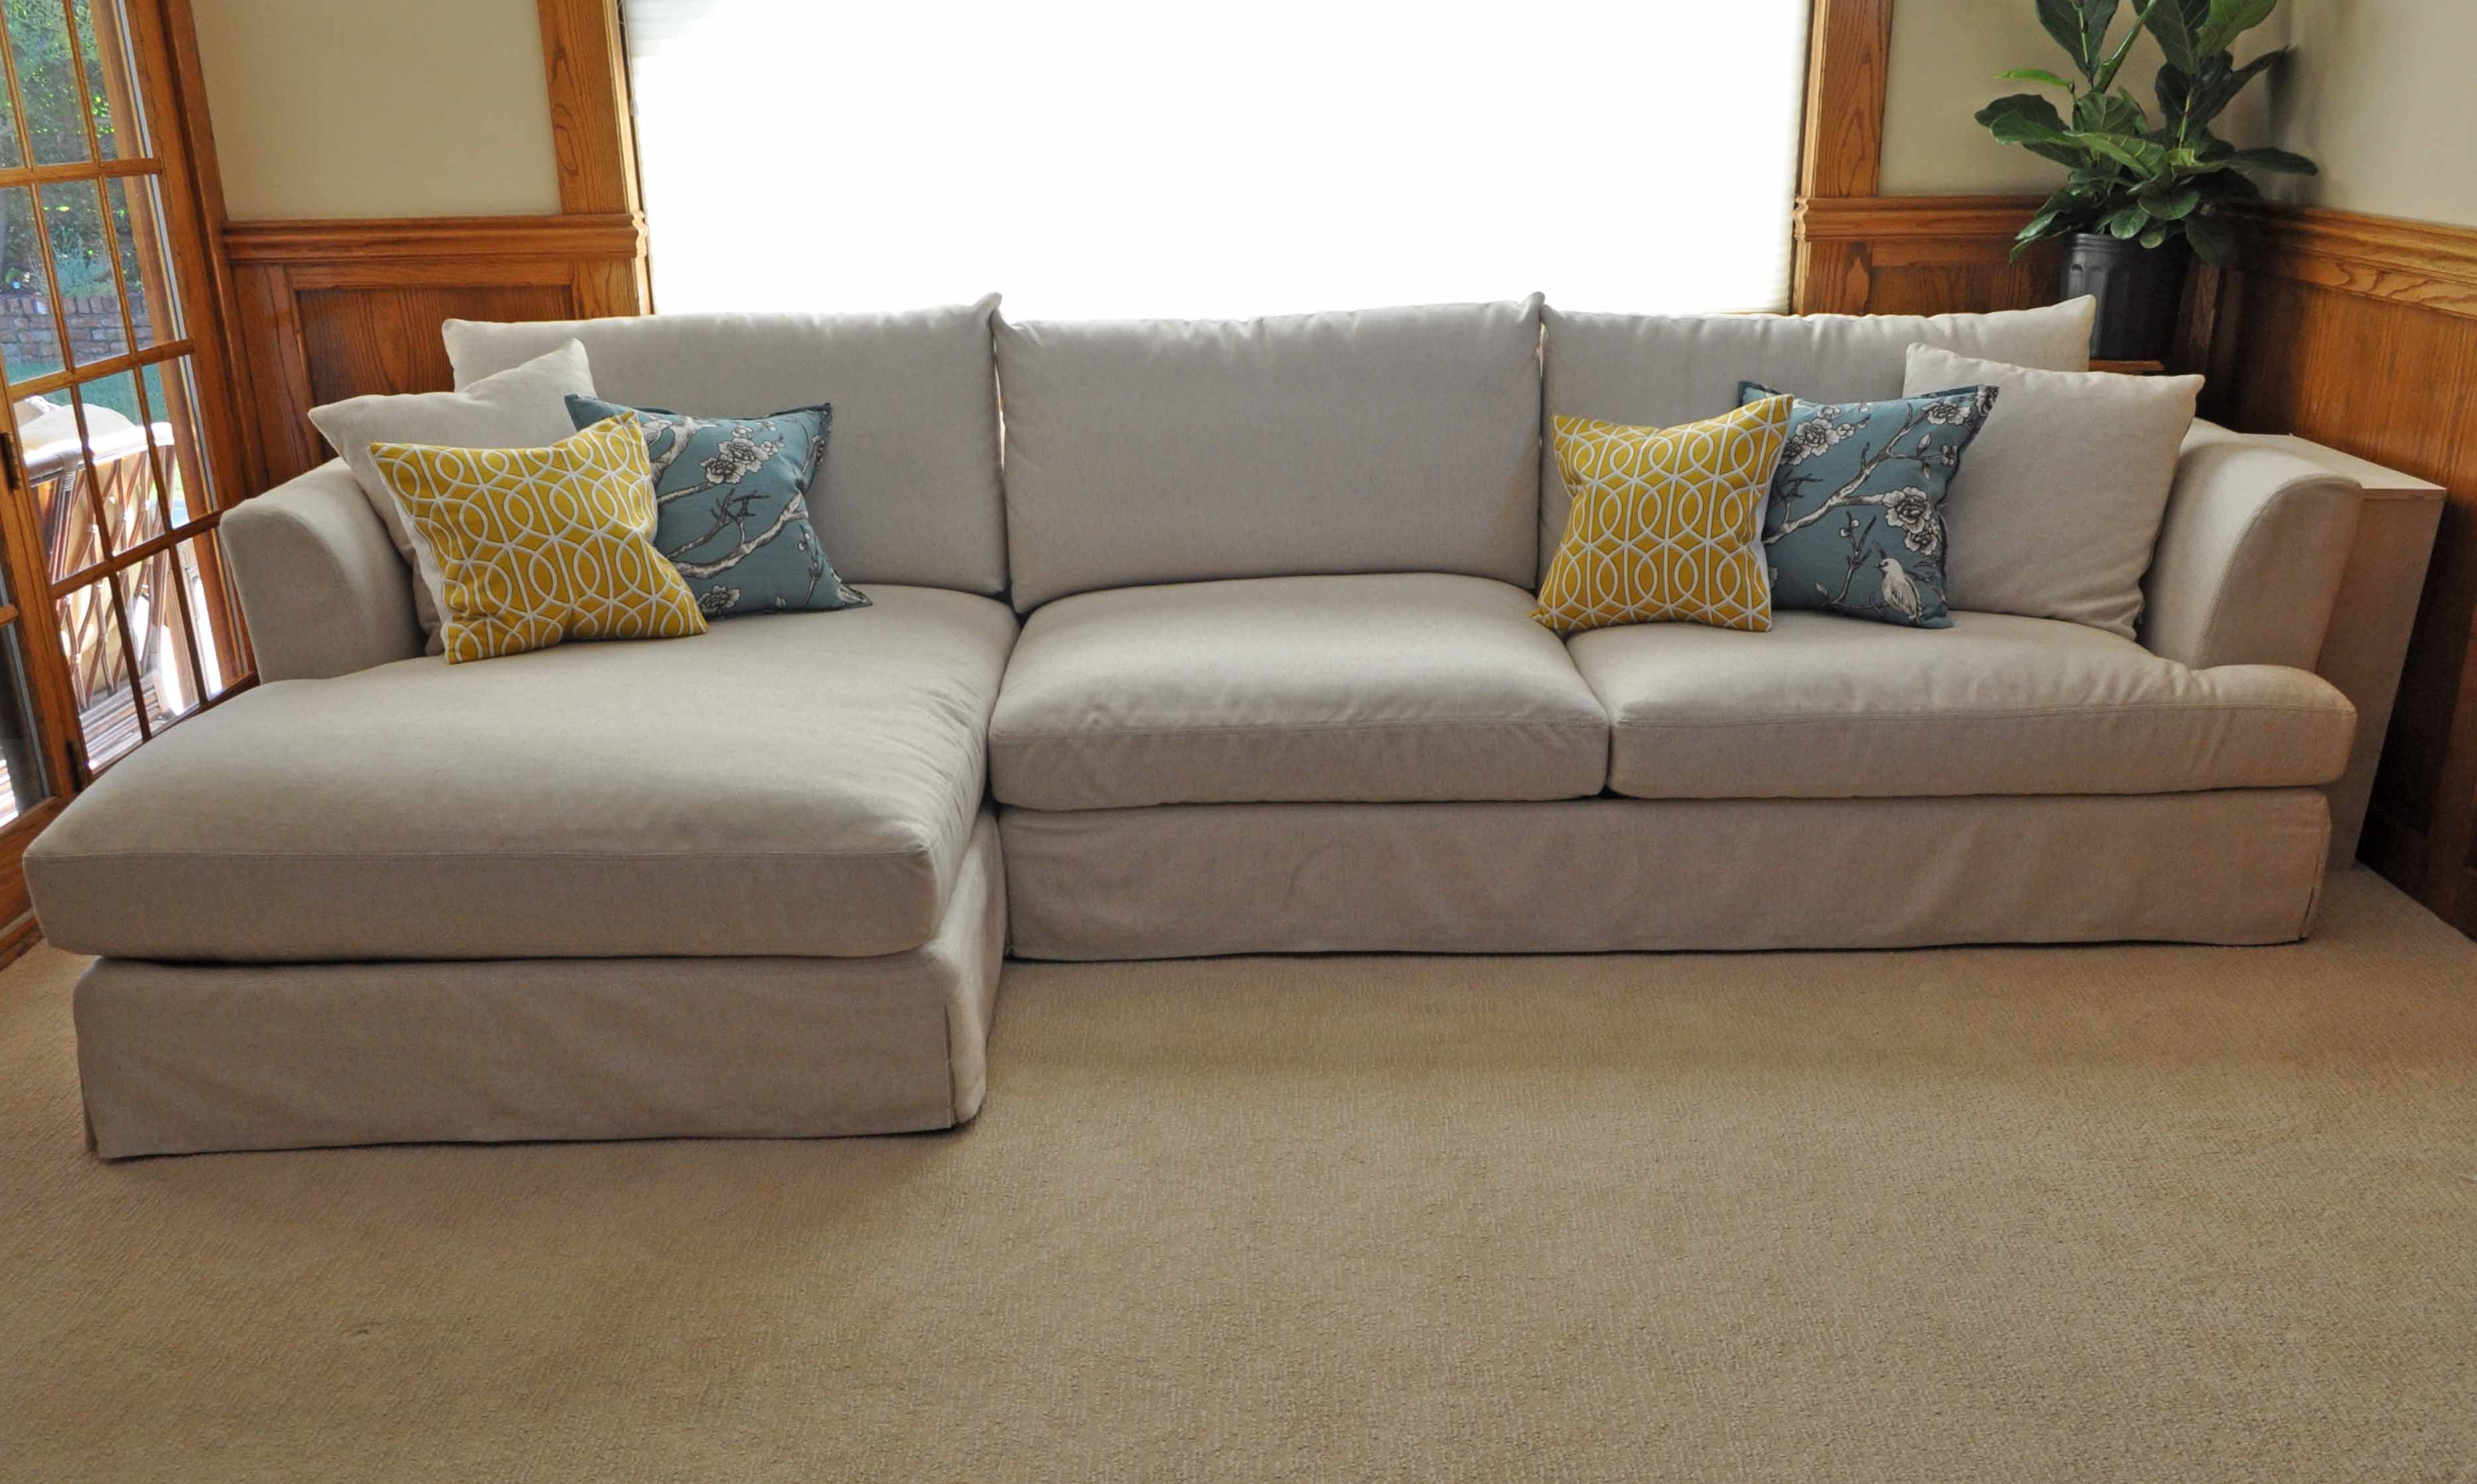 Cream Colored Sofas With Regard To Famous Sleeper Sofa : Comfy Cream Sofa Beige Couch Decor Cream Leather (View 8 of 15)